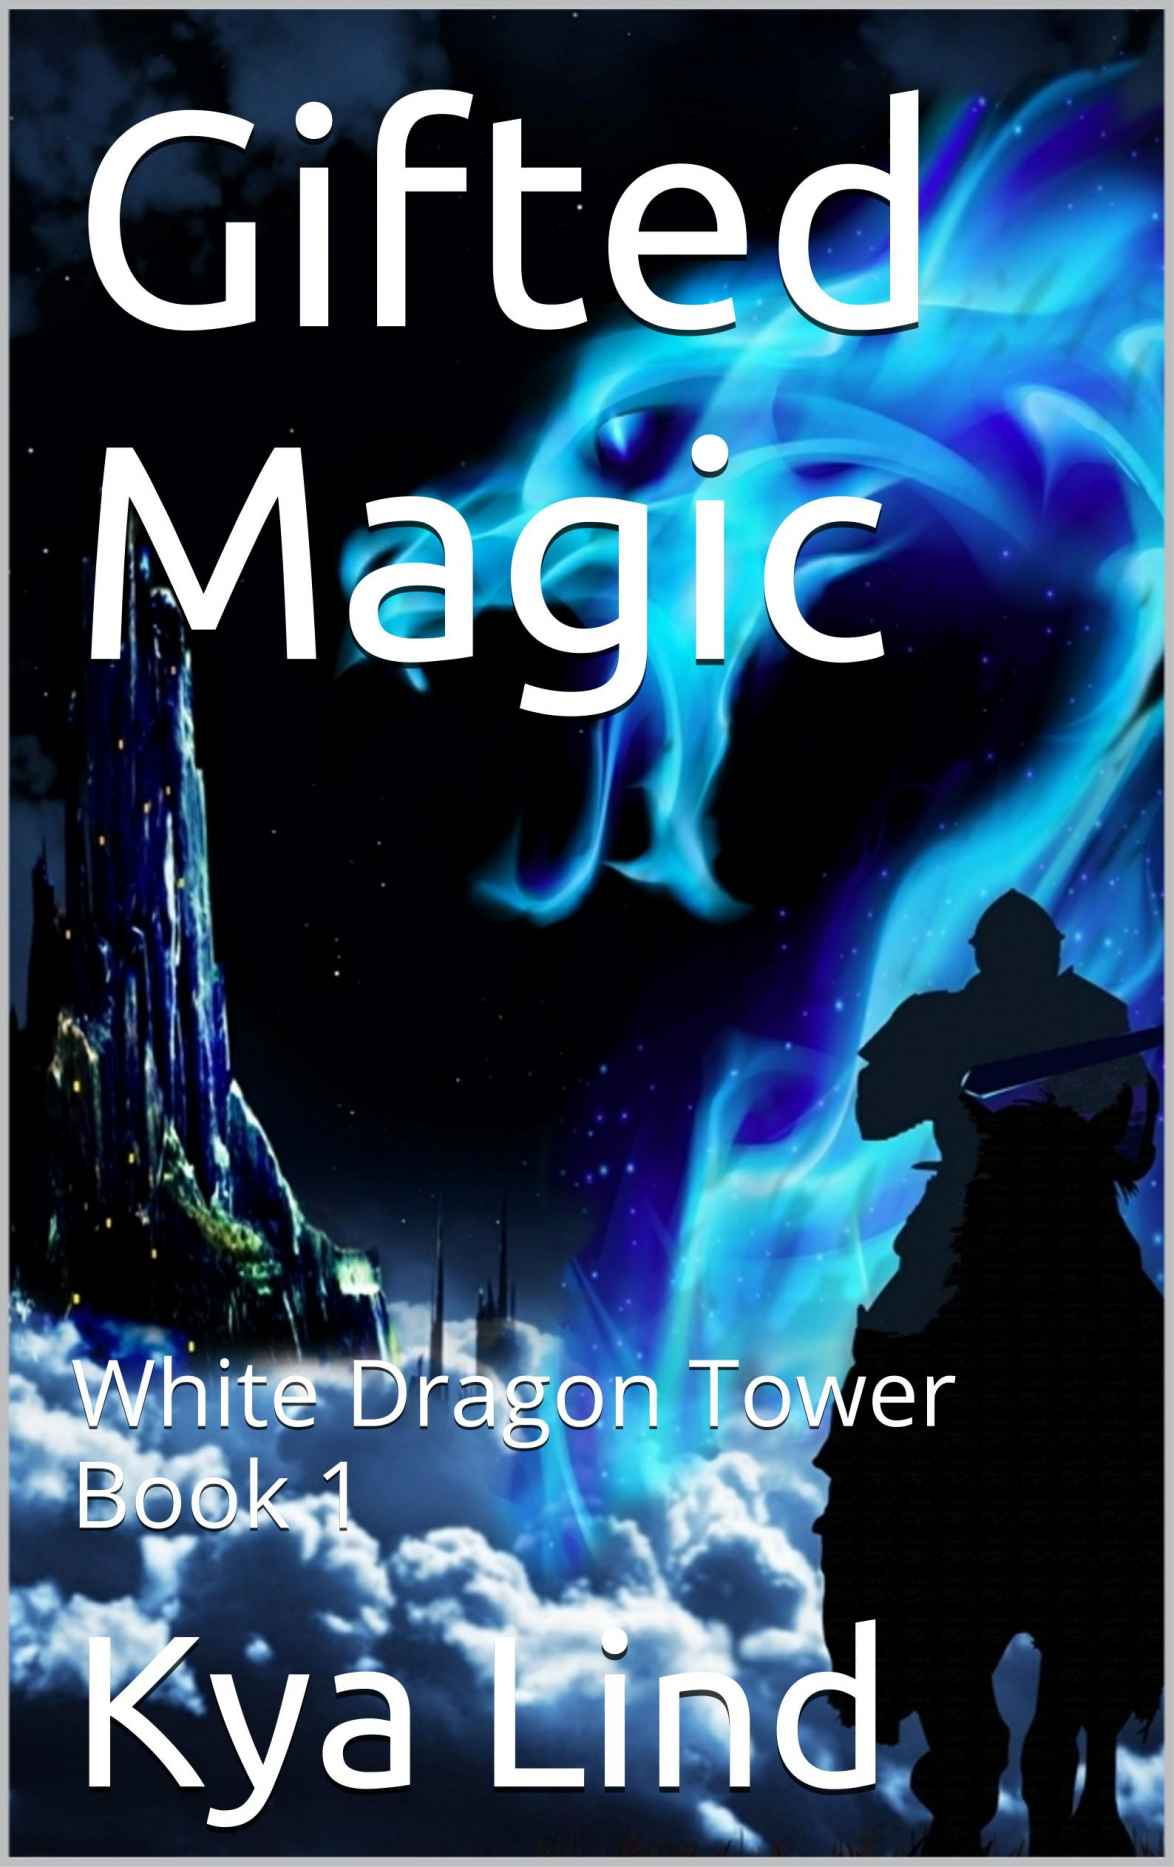 White Dragon Tower – Book 1 – Gifted Magic